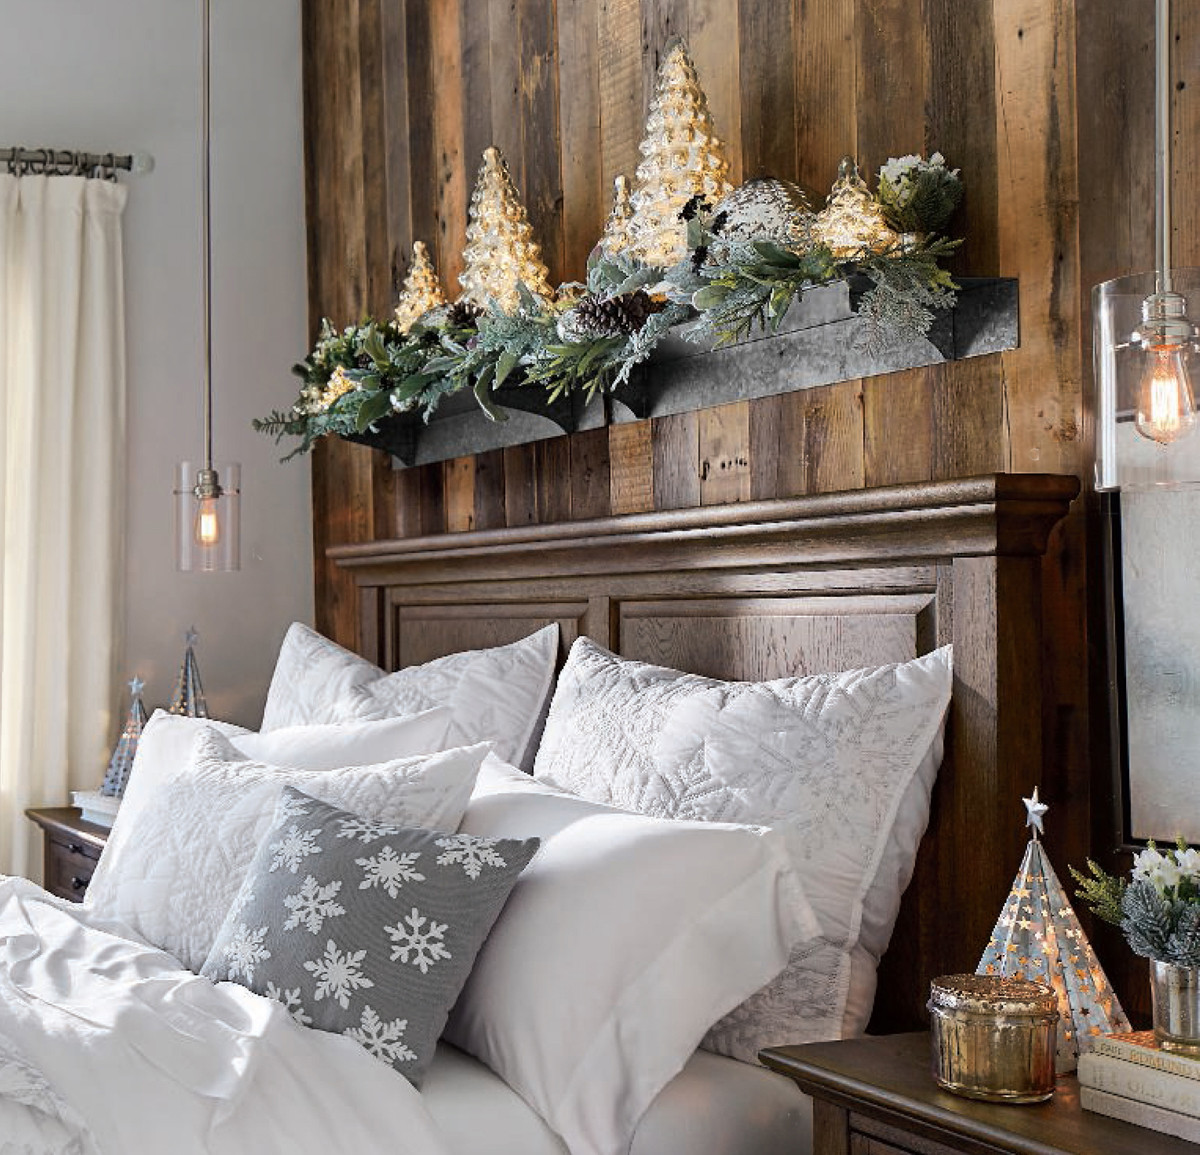 Christmas Bedroom Decor  Rustic Christmas Decorating Ideas Country Christmas Decor